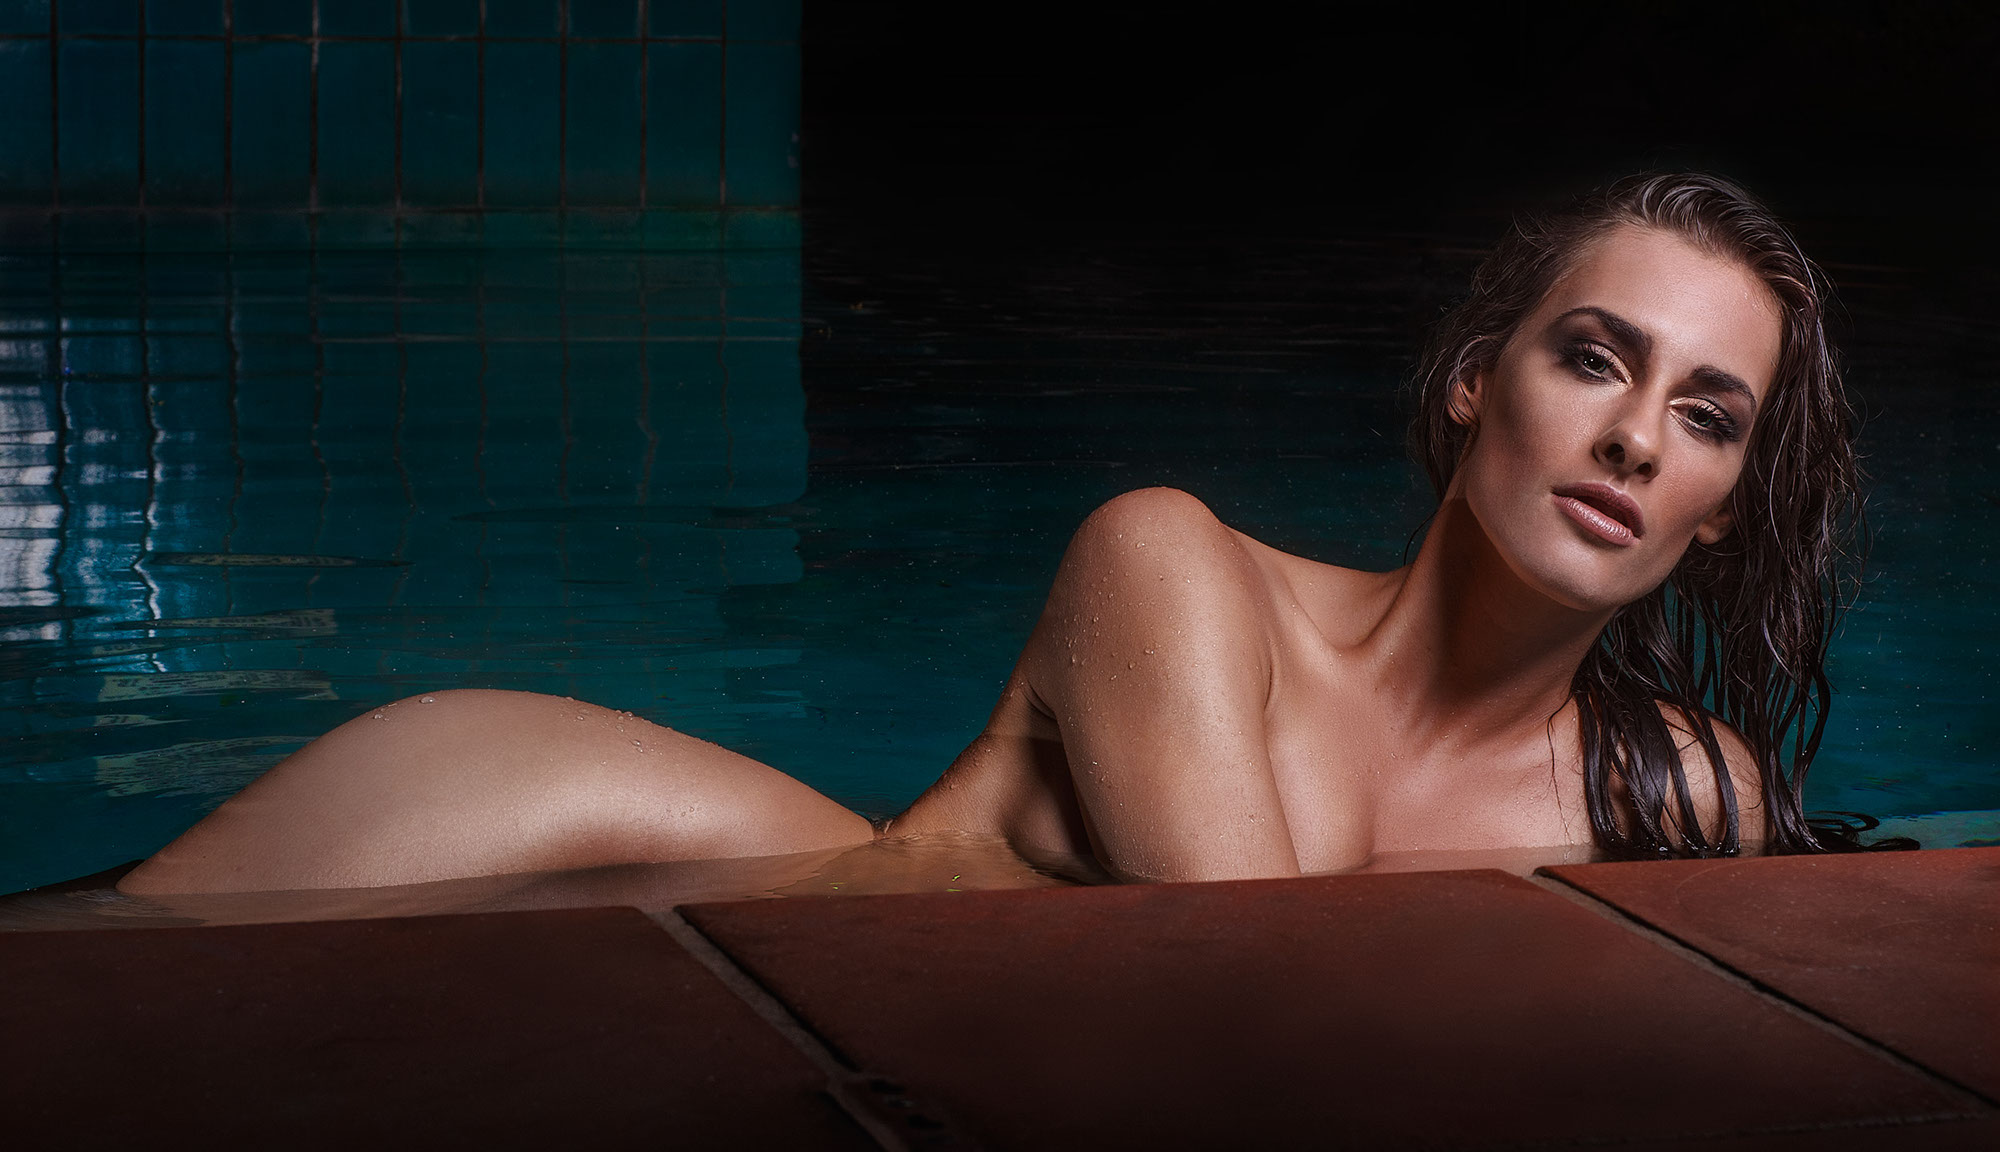 model-body-portfolio-pool-nude-sexy-skin-glamour